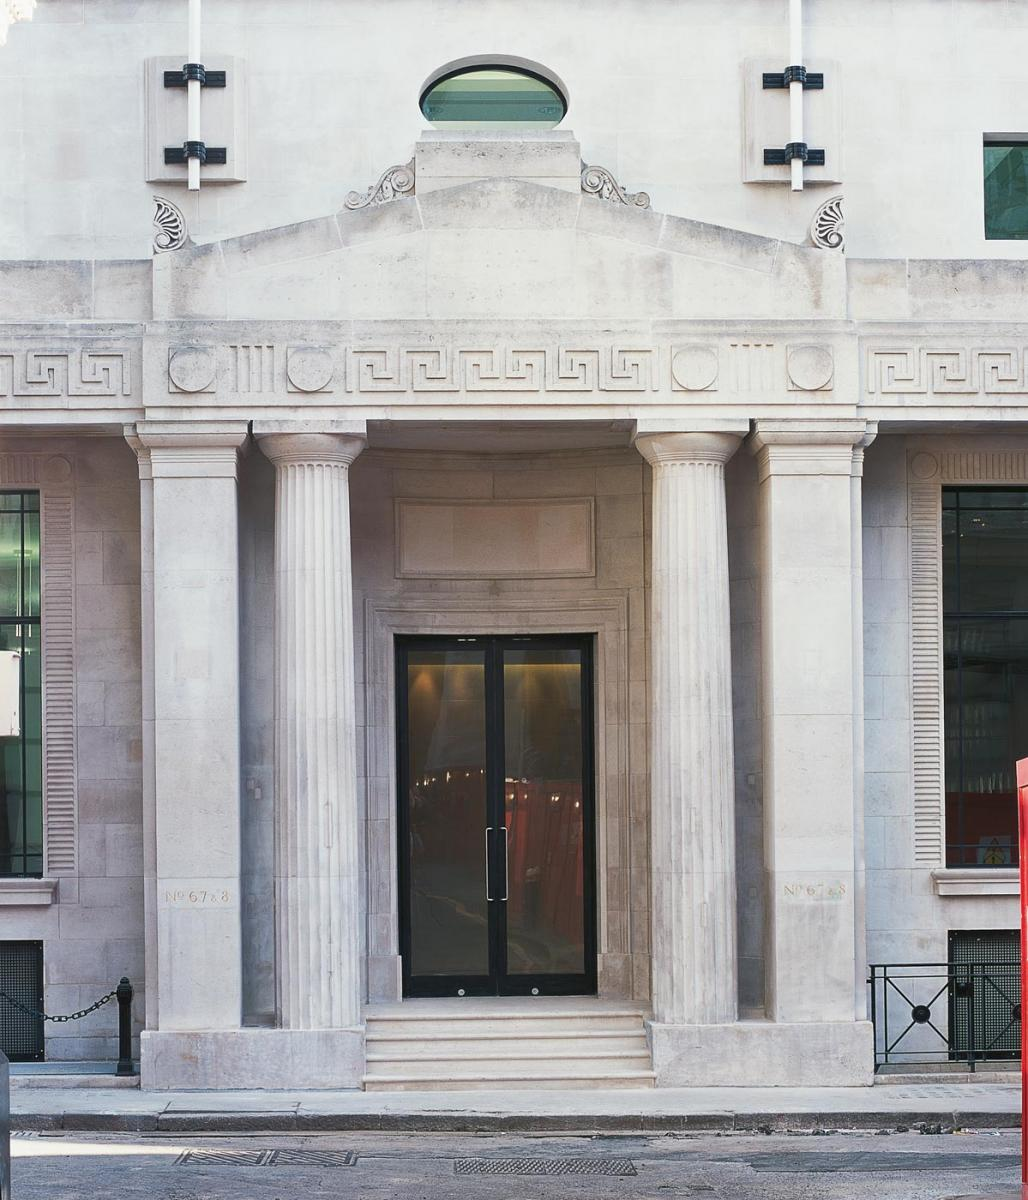 Tokenhouse Yard, City of London - Entrance exterior